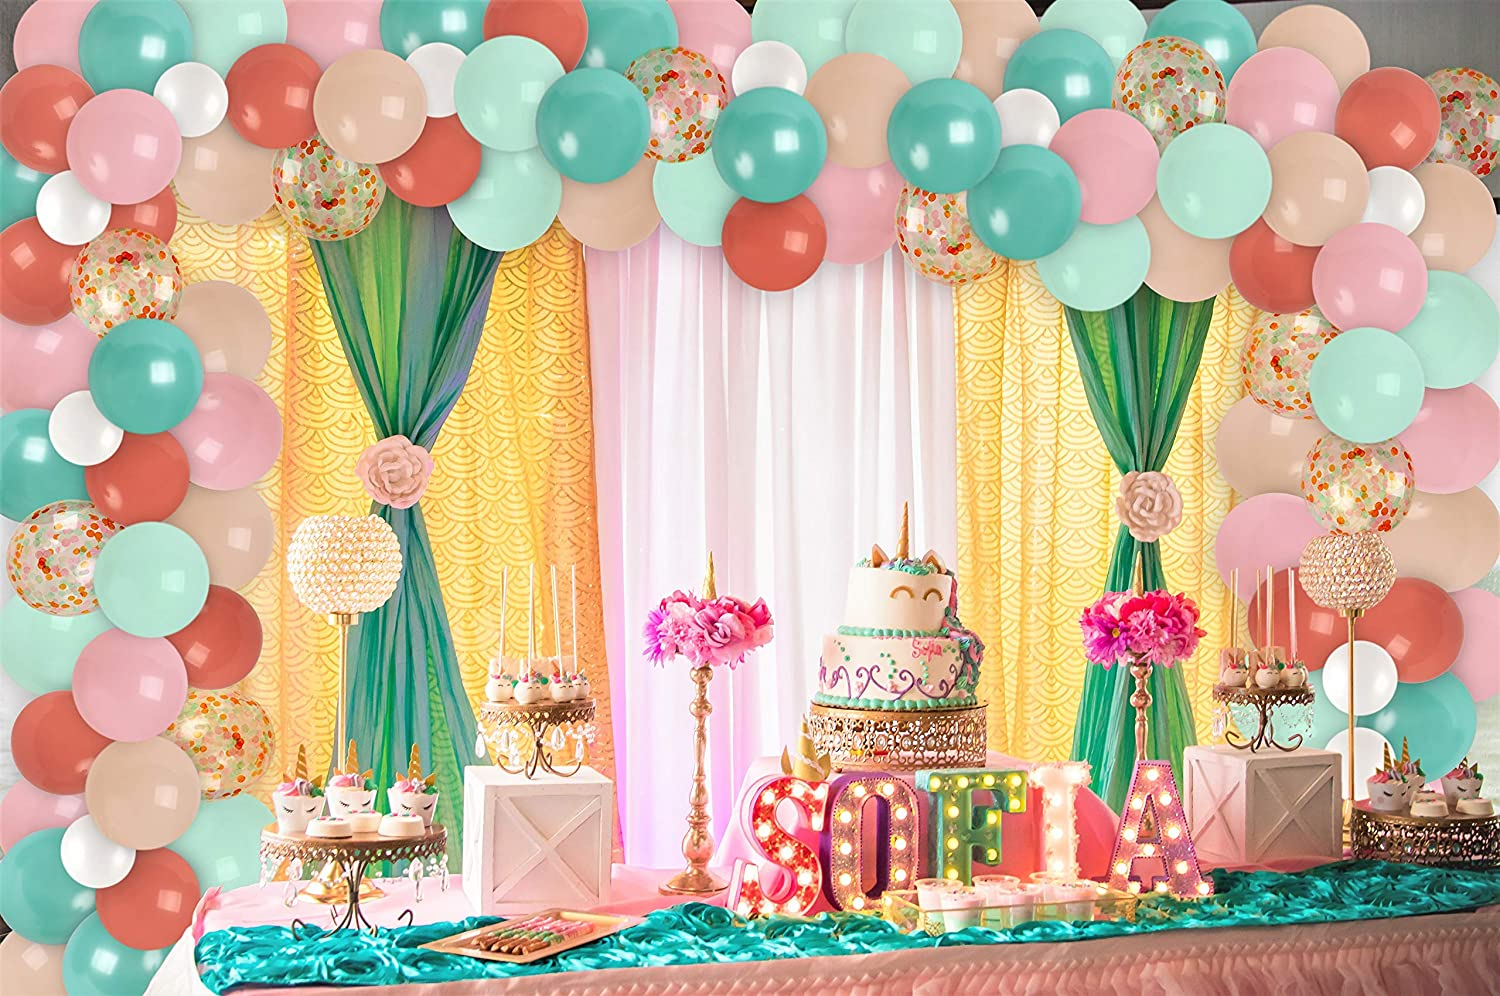 Pink and Teal Balloon Garland Kit Pastel Orange Turquoise Coral Balloons Arch Graduation Decor for Wedding Boho Girl Birthday Party Baptism Decorations